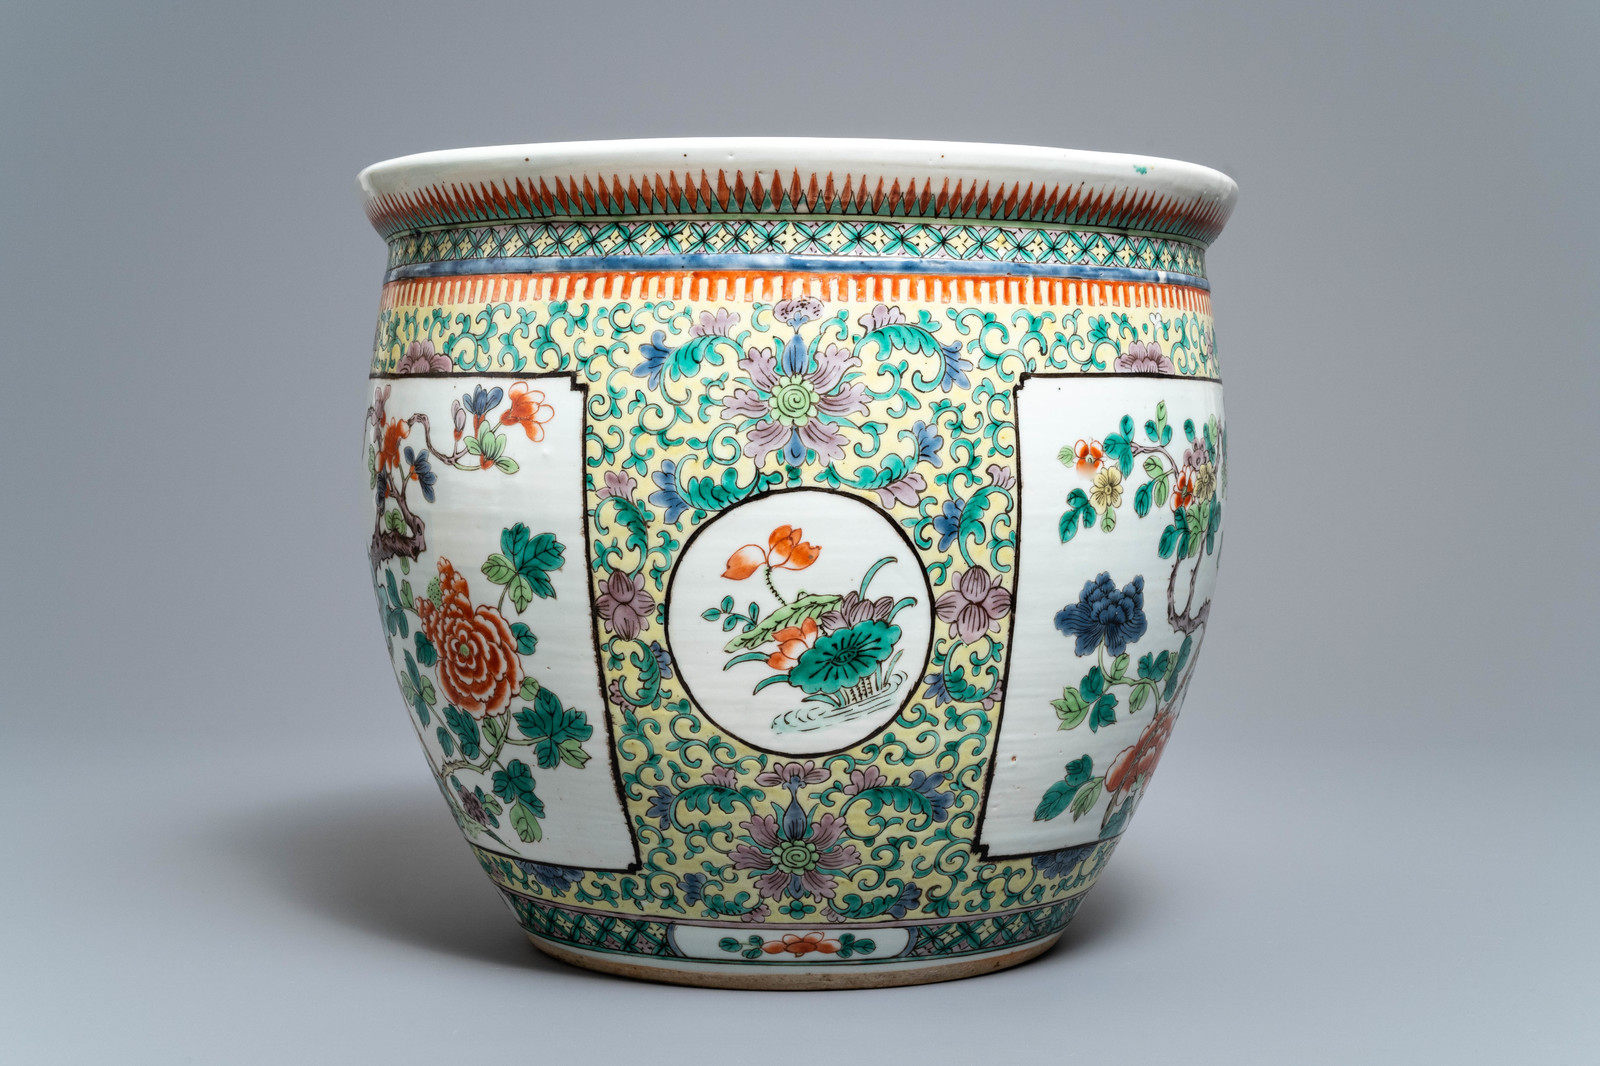 Lot 34 - A Chinese famille verte fish bowl with birds among flowers, 19th C.